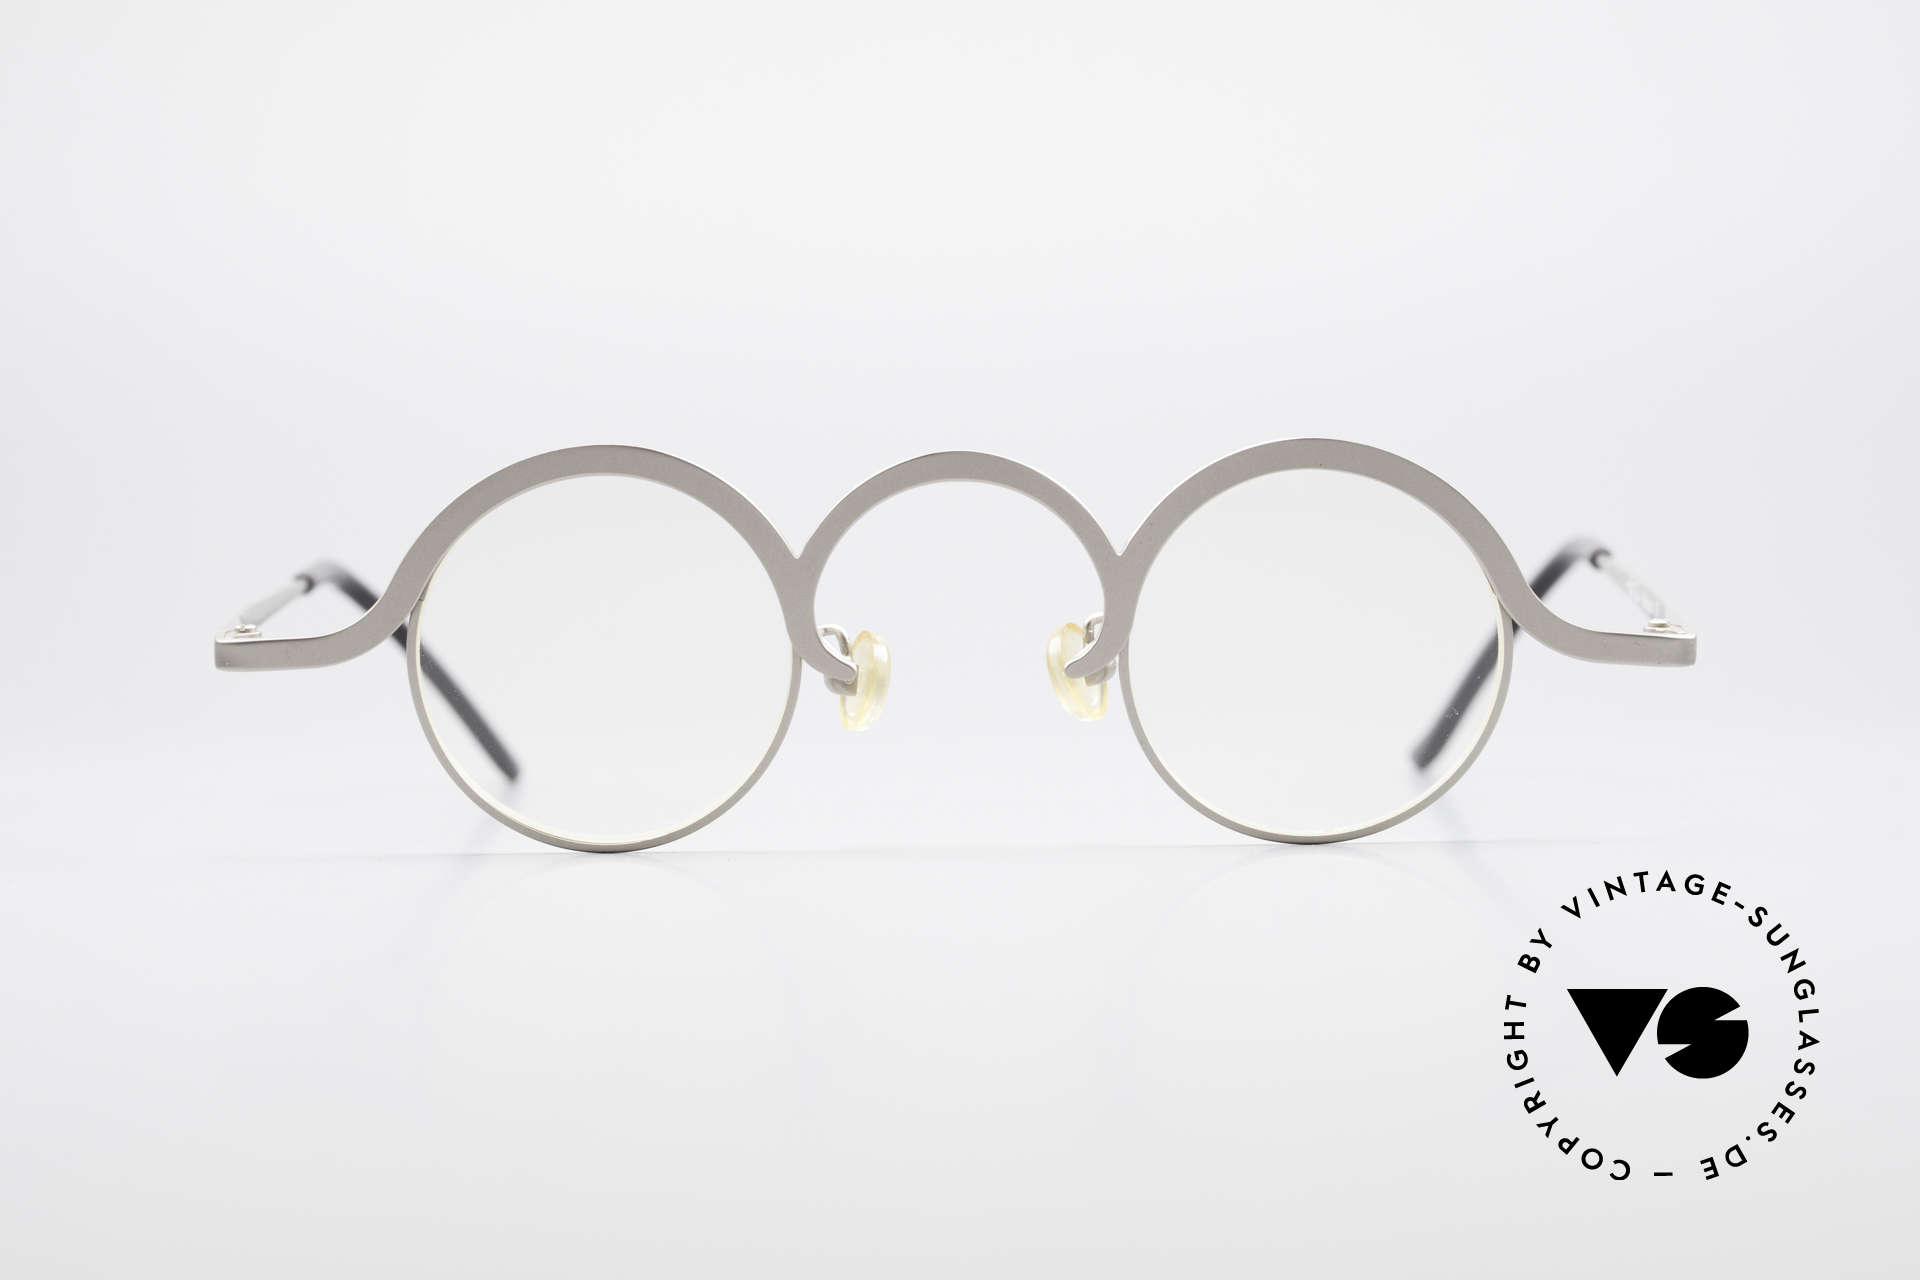 Theo Belgium Jeu Avant-Garde Vintage Specs, founded in 1989 as 'opposite pole' to the 'mainstream', Made for Men and Women